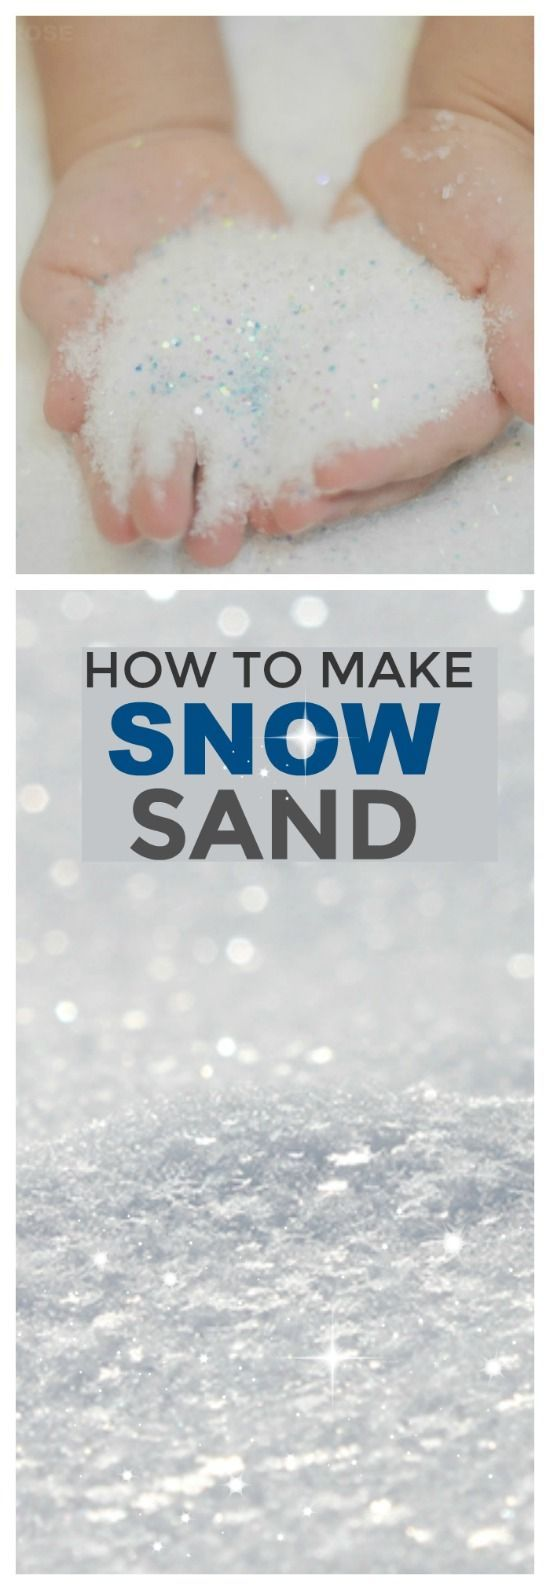 HOW TO MAKE SNOW SAND for kids.  I can't wait to try this!